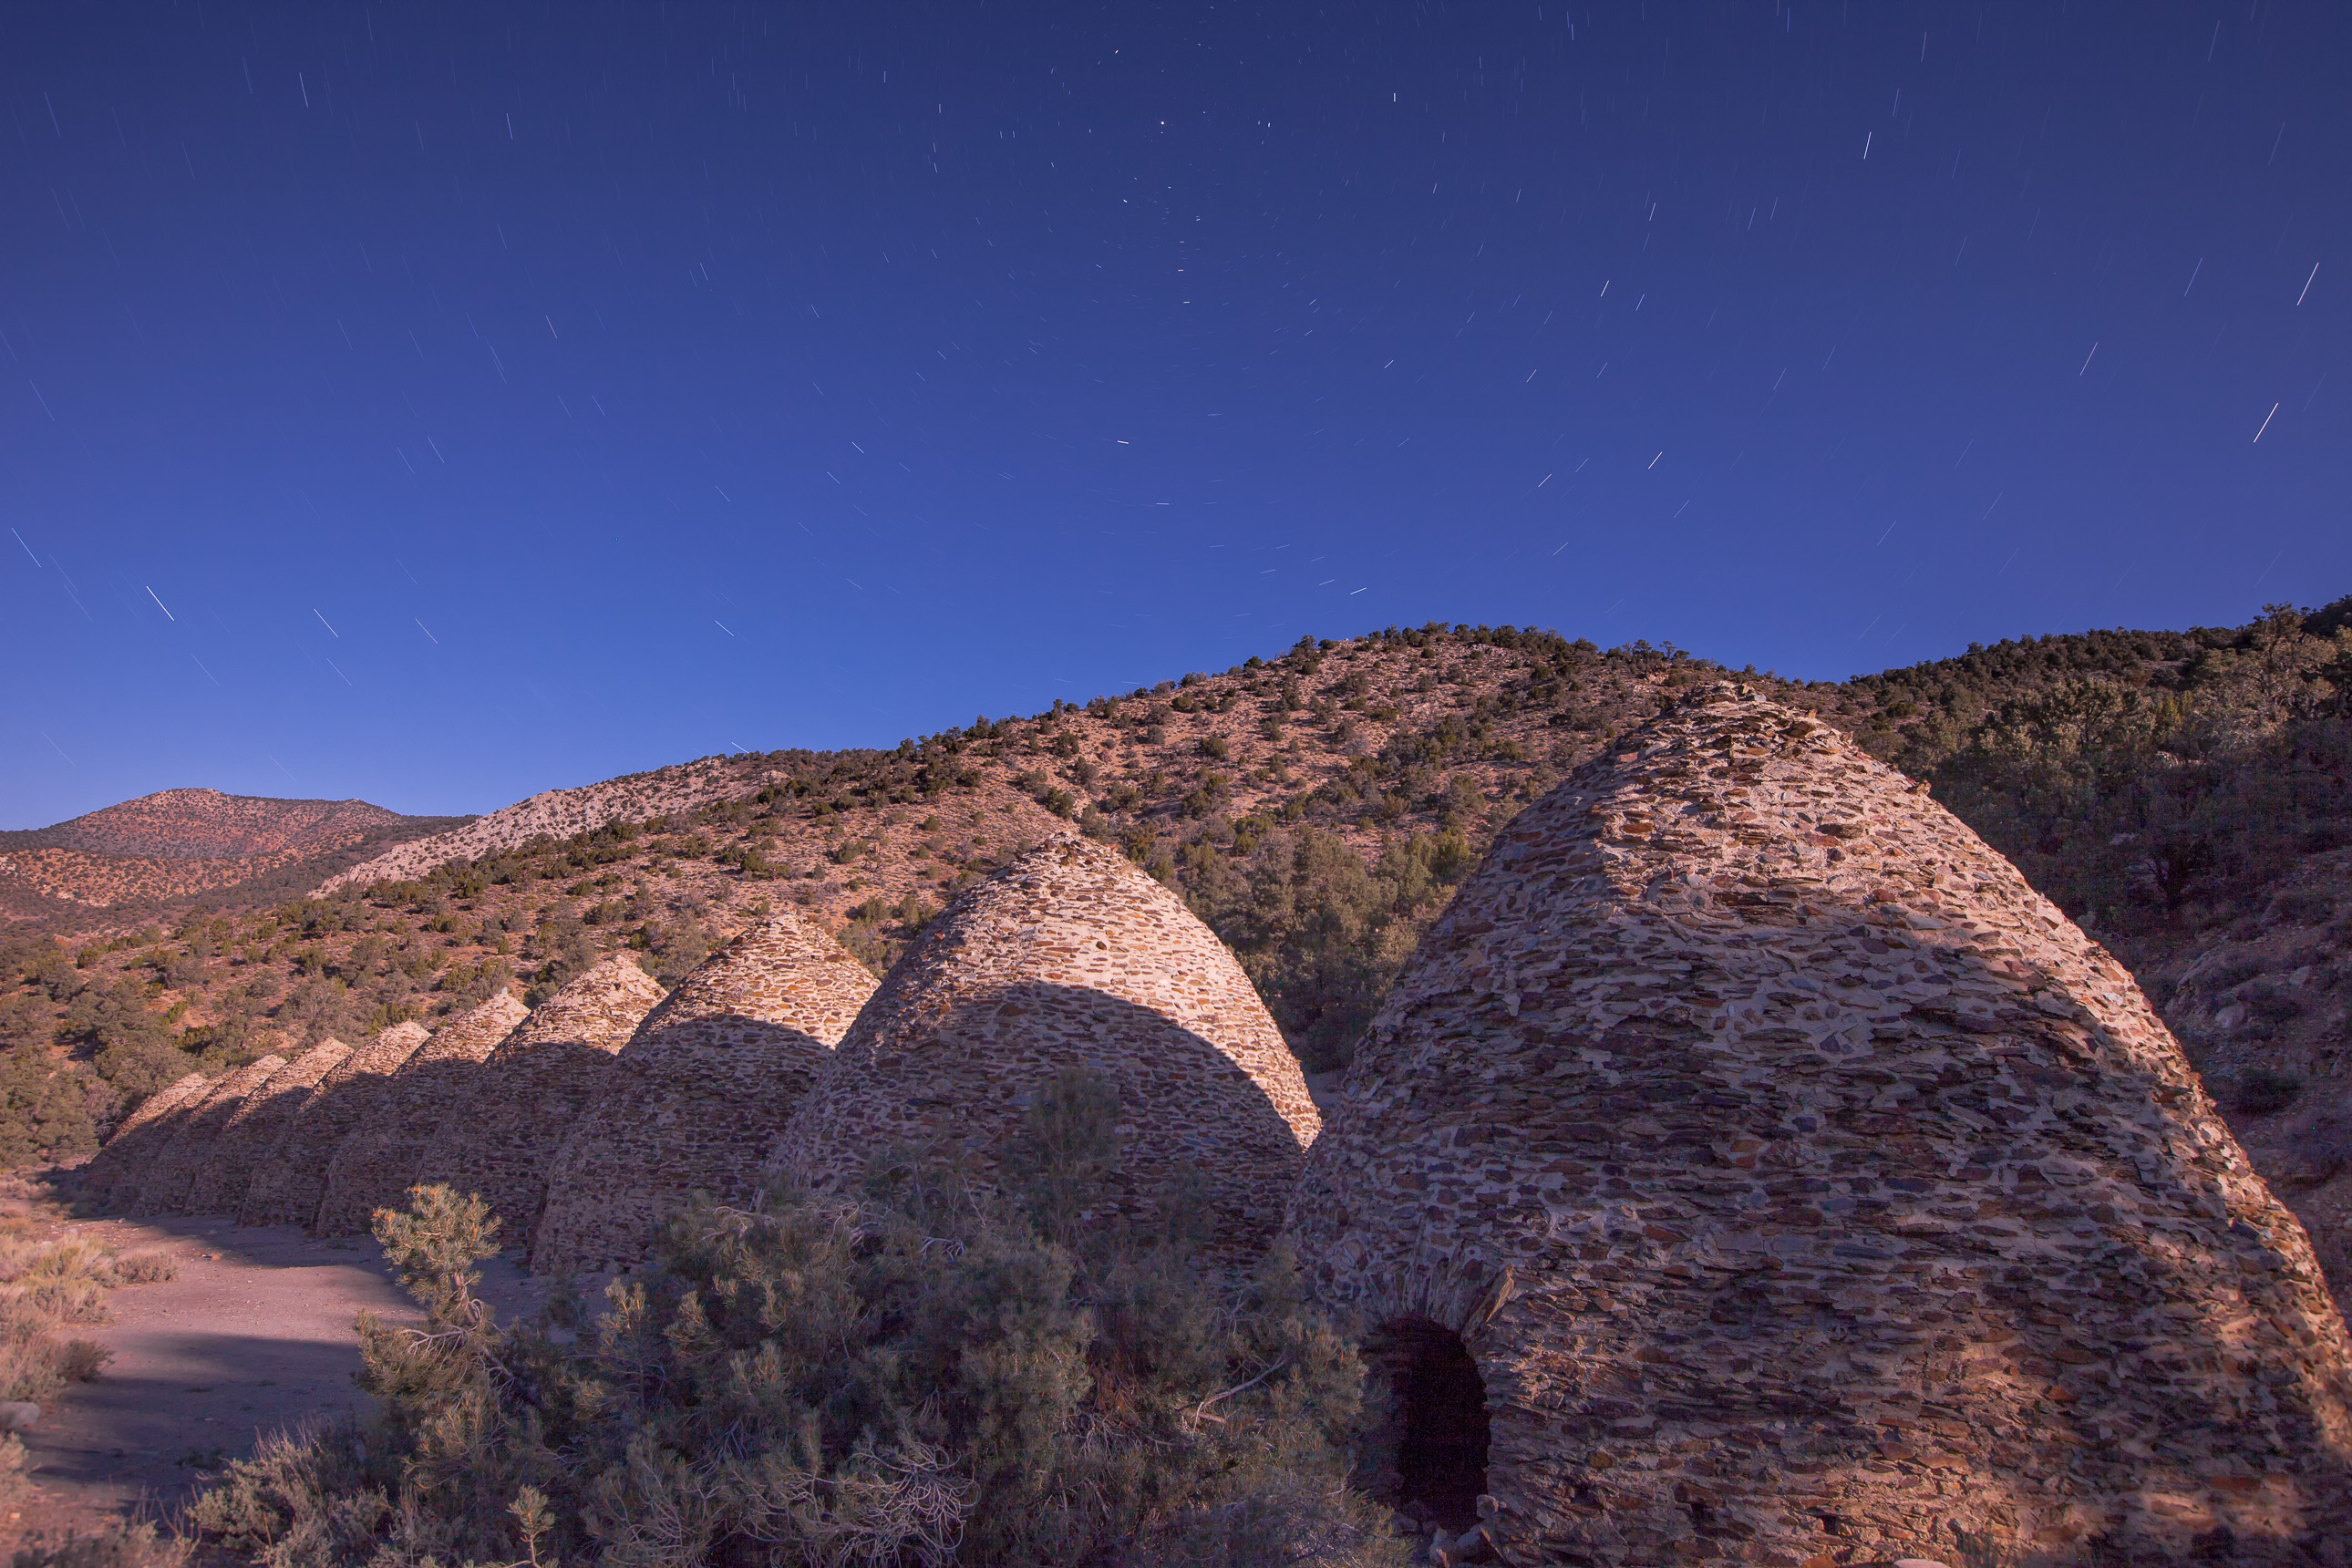 Death Valley Charcoal Kilns at night